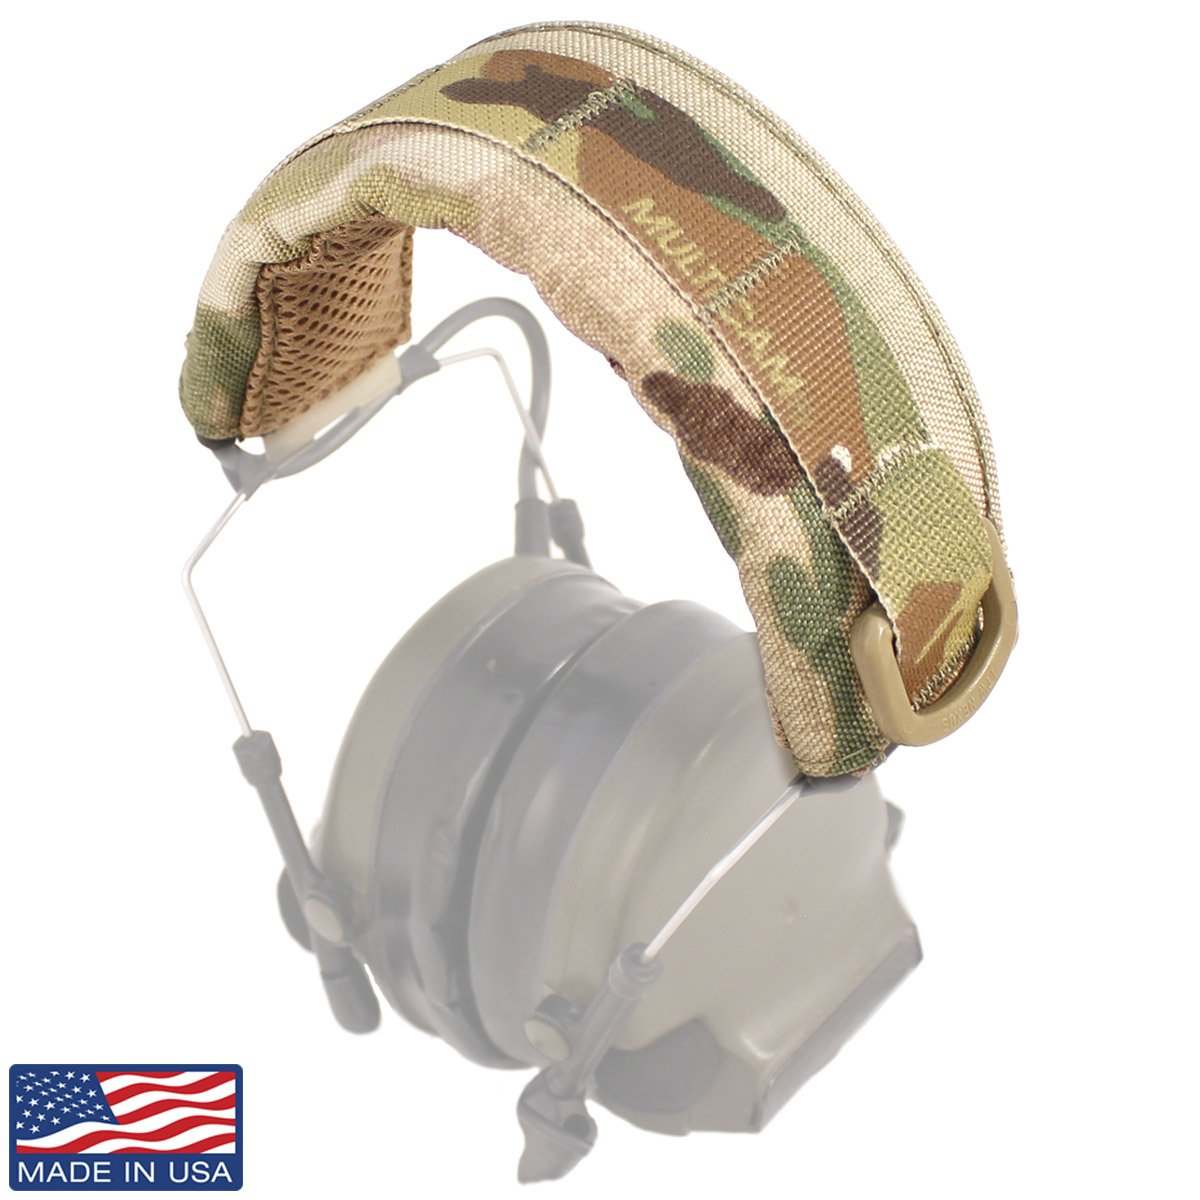 U.S. Tactical Sewing USTS Advanced Modular Headset Cover (Multicam) by U.S. Tactical Sewing